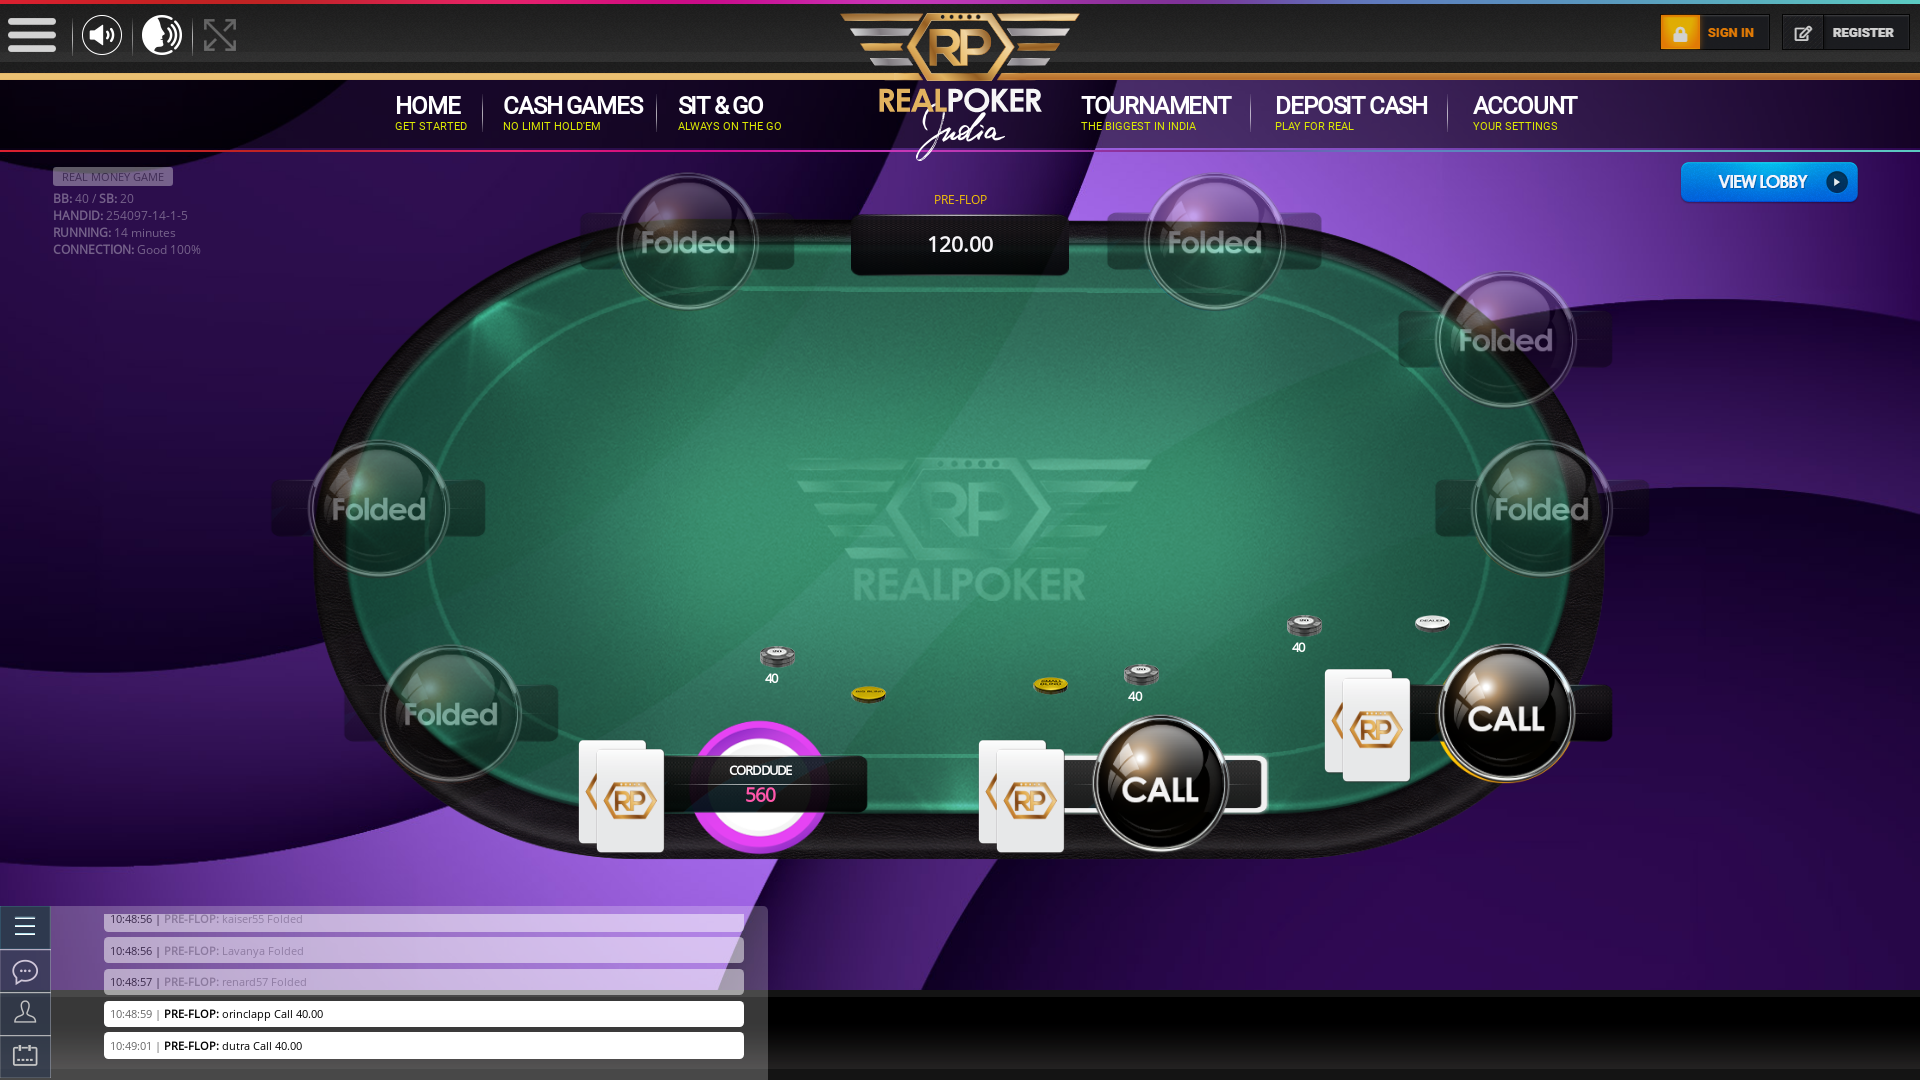 Real poker 10 player table in the 14th minute